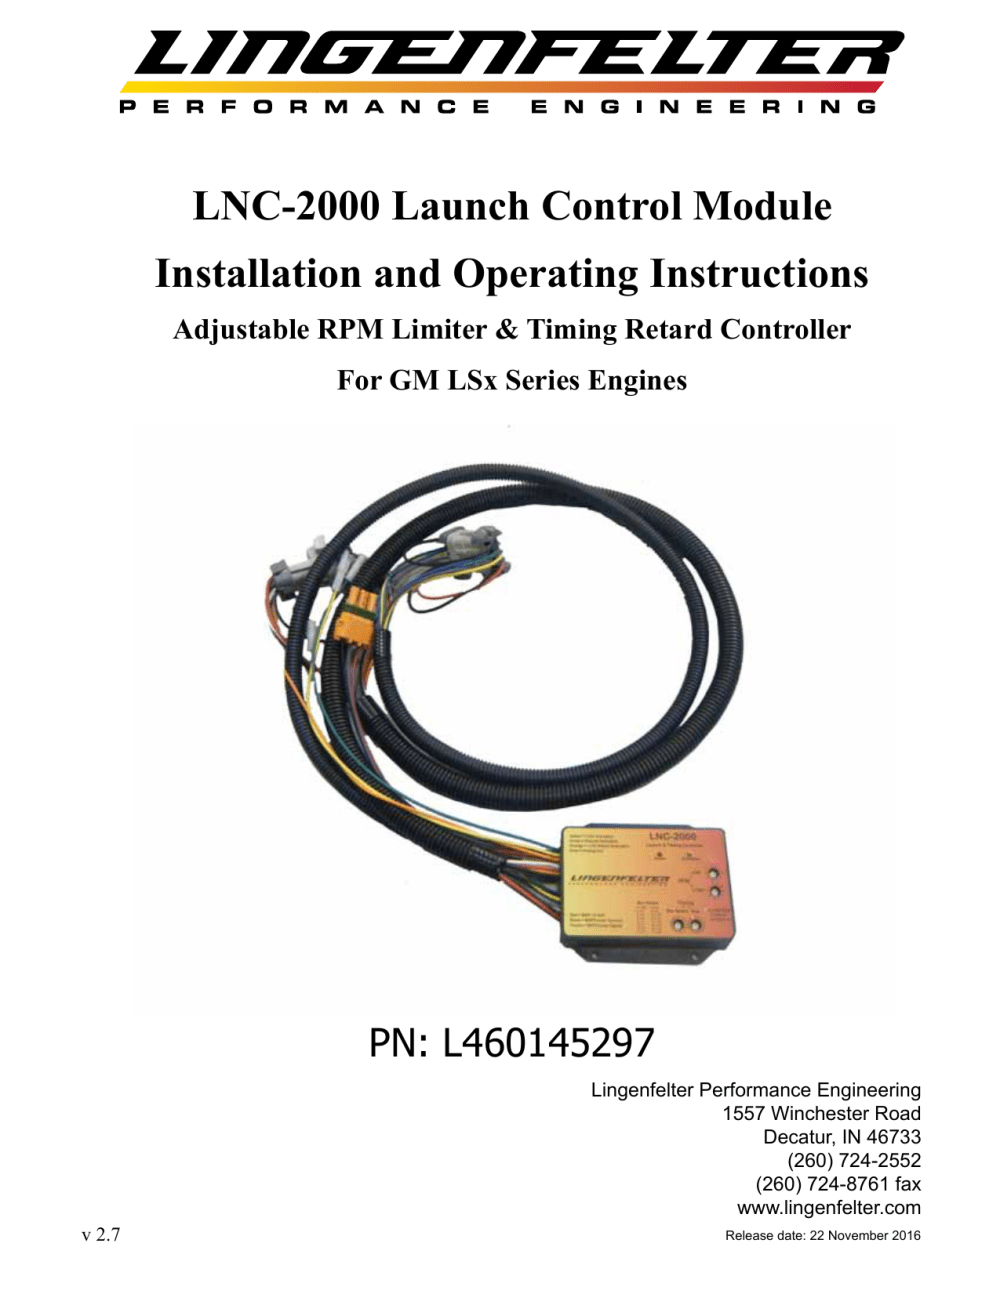 medium resolution of lnc 2000 launch control module installation and operating